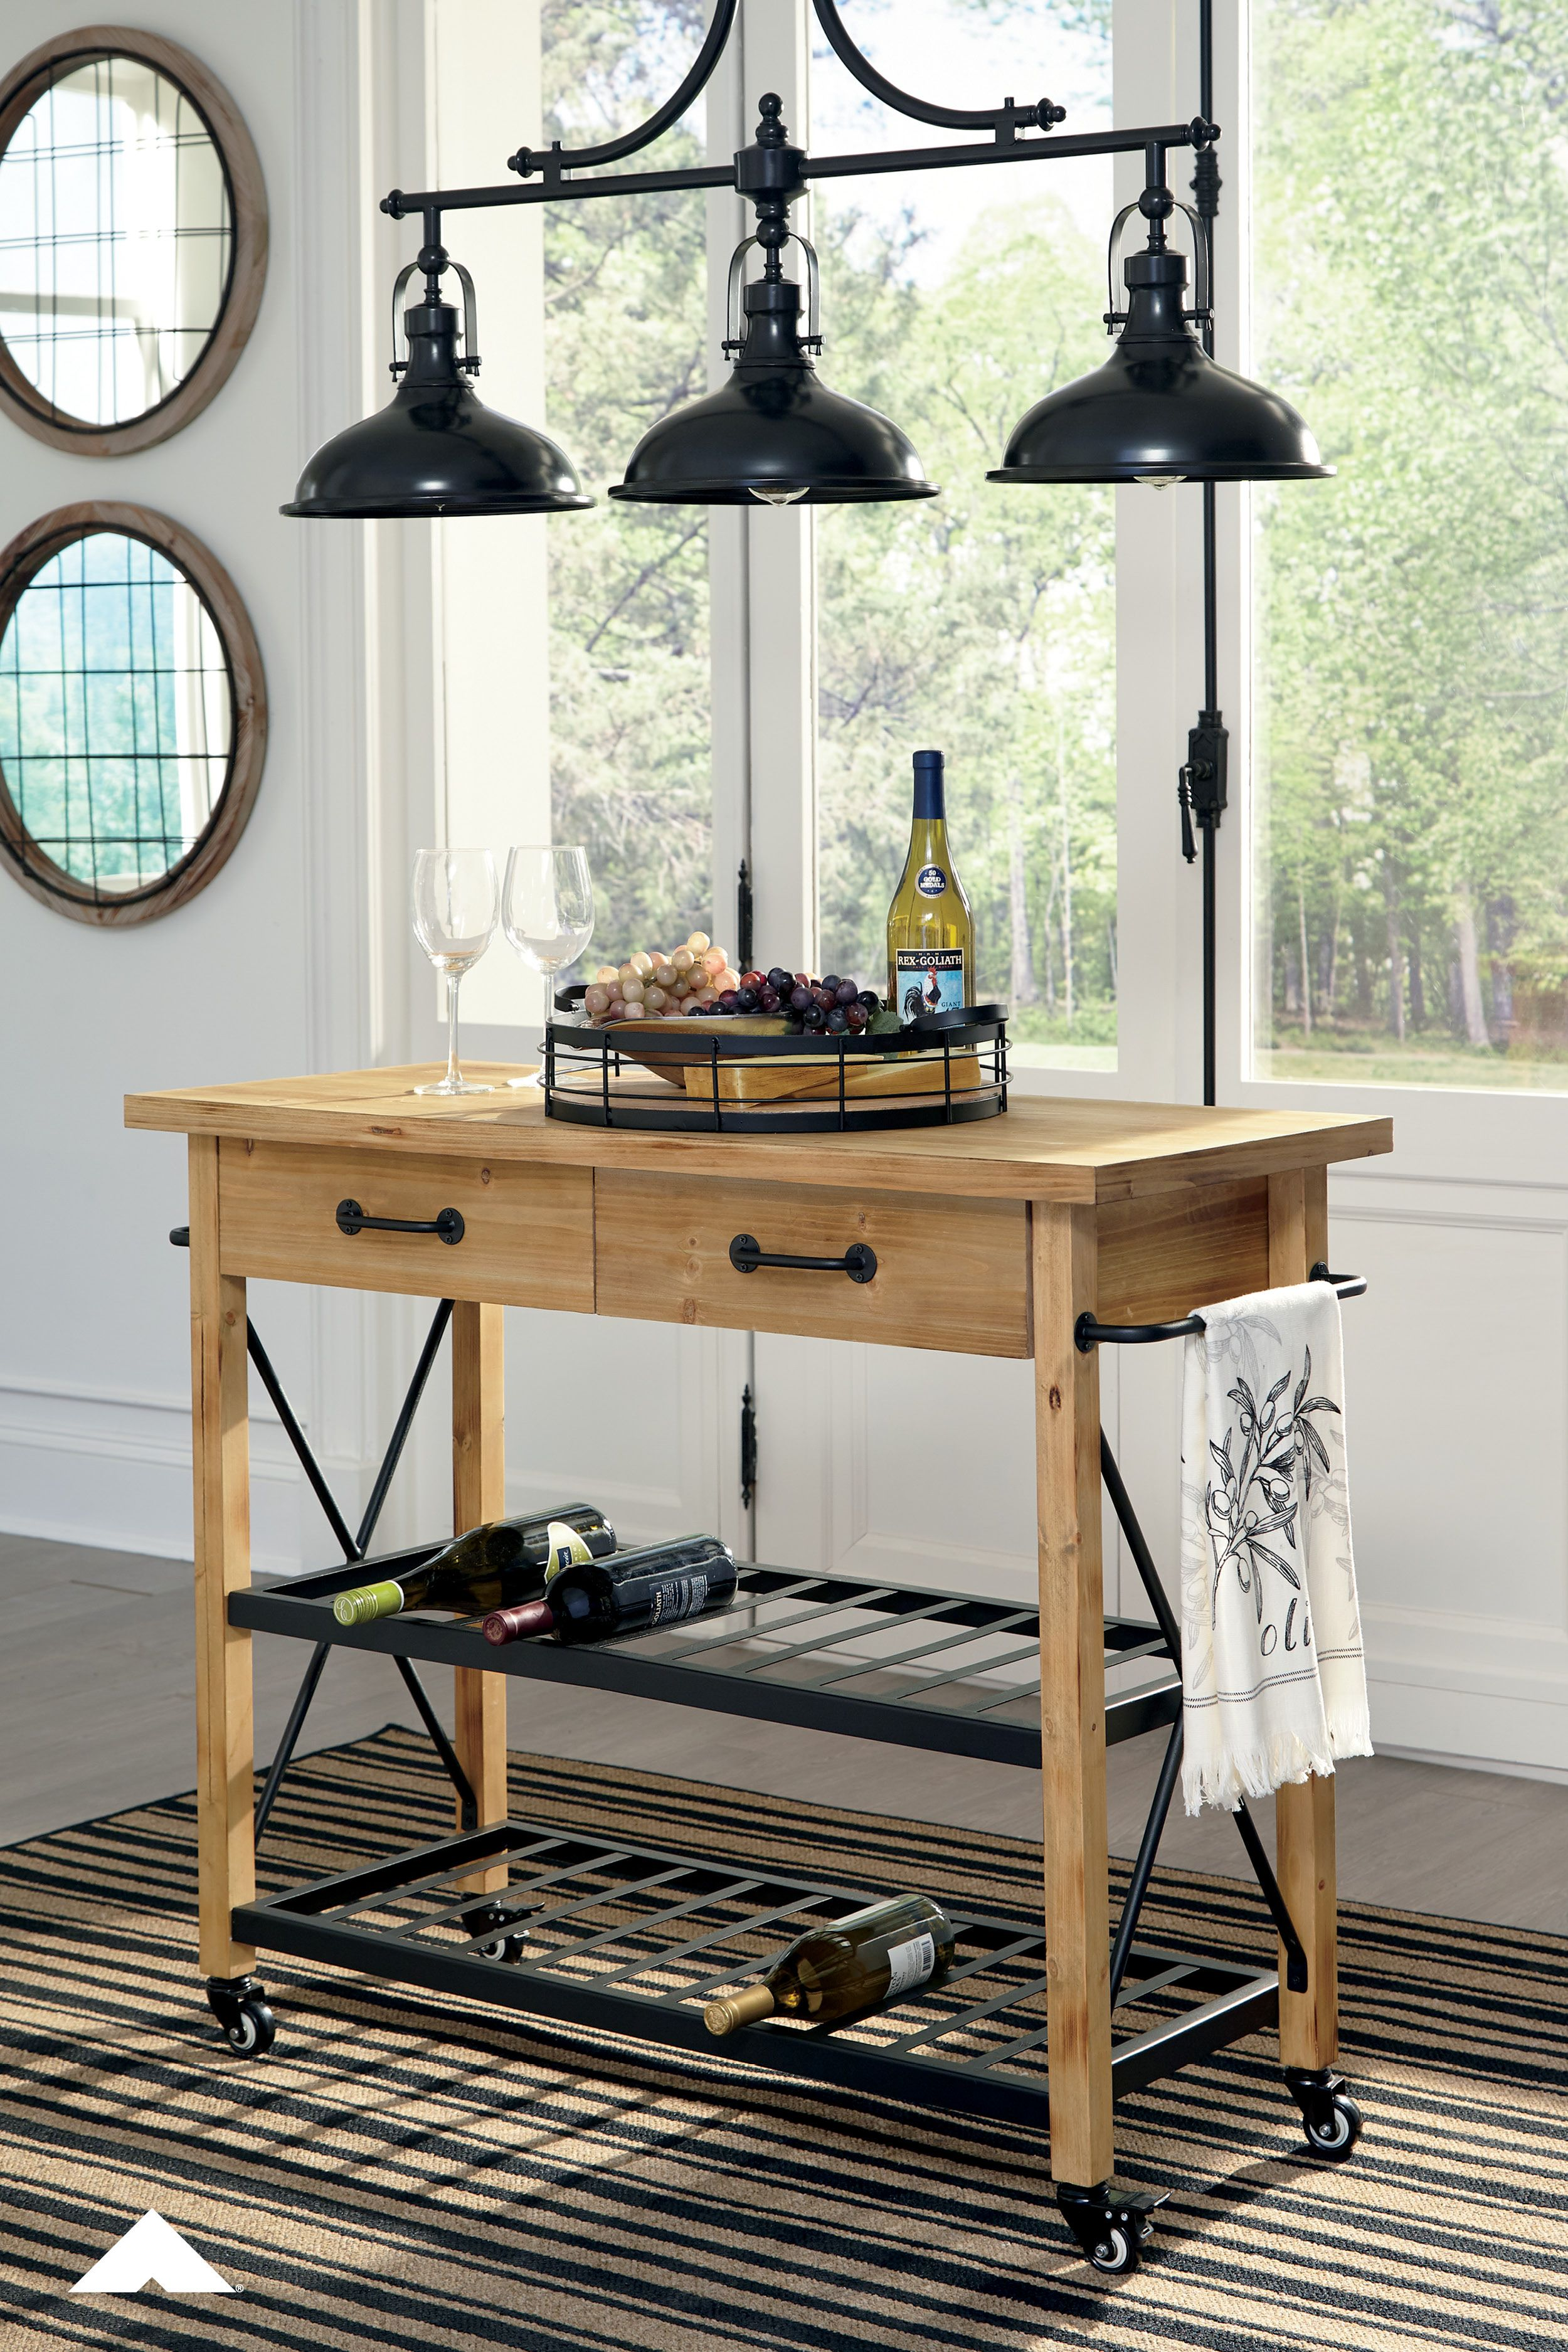 Marlijo Kitchen Cart Have An Appetite For Rustic Style And